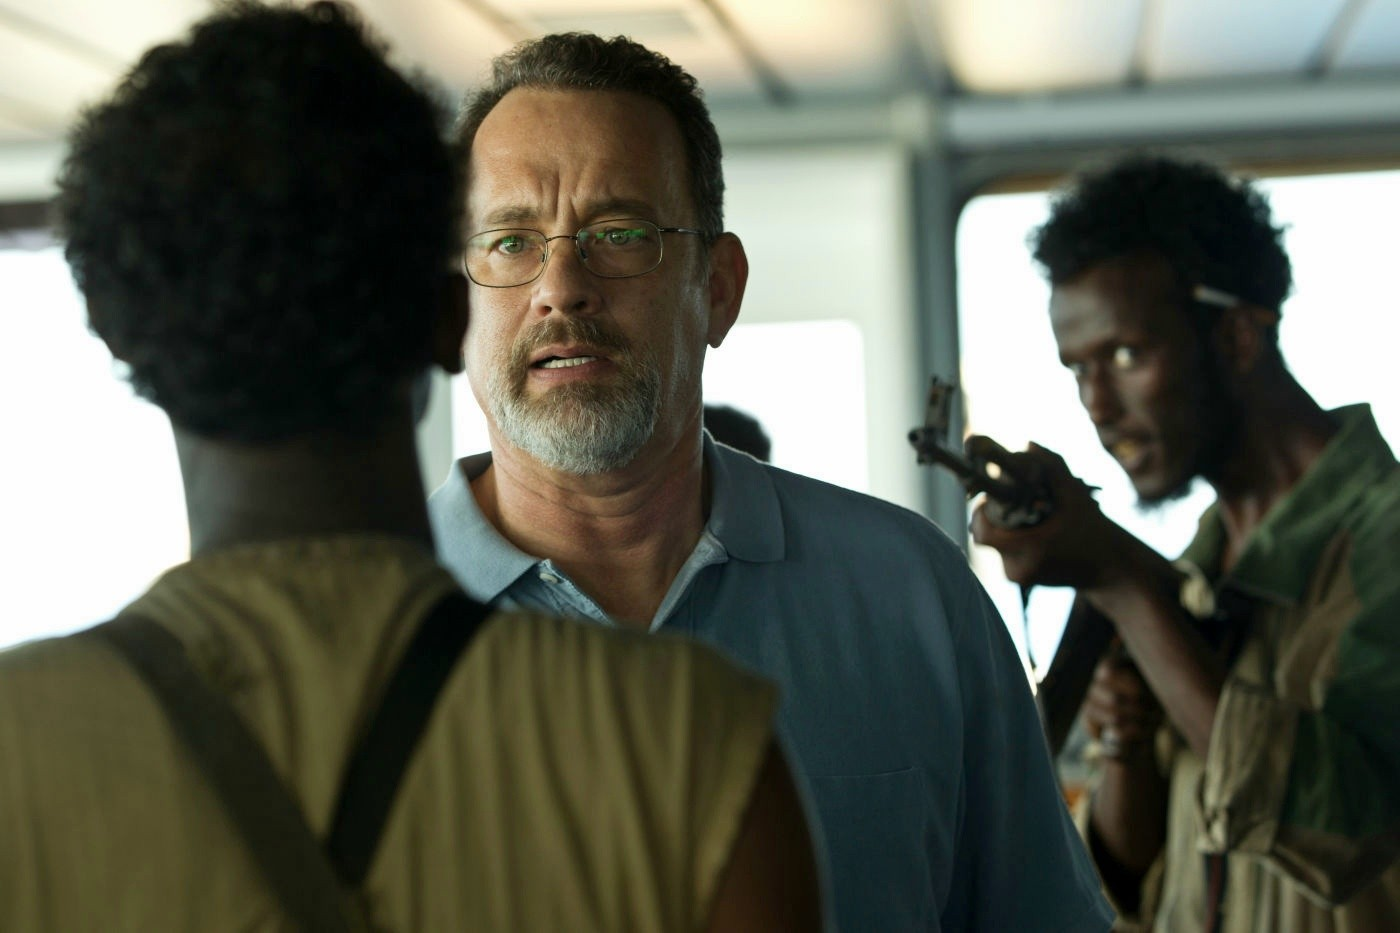 Captain Phillips starring Tom Hanks (Must Watch Movie) Trailer